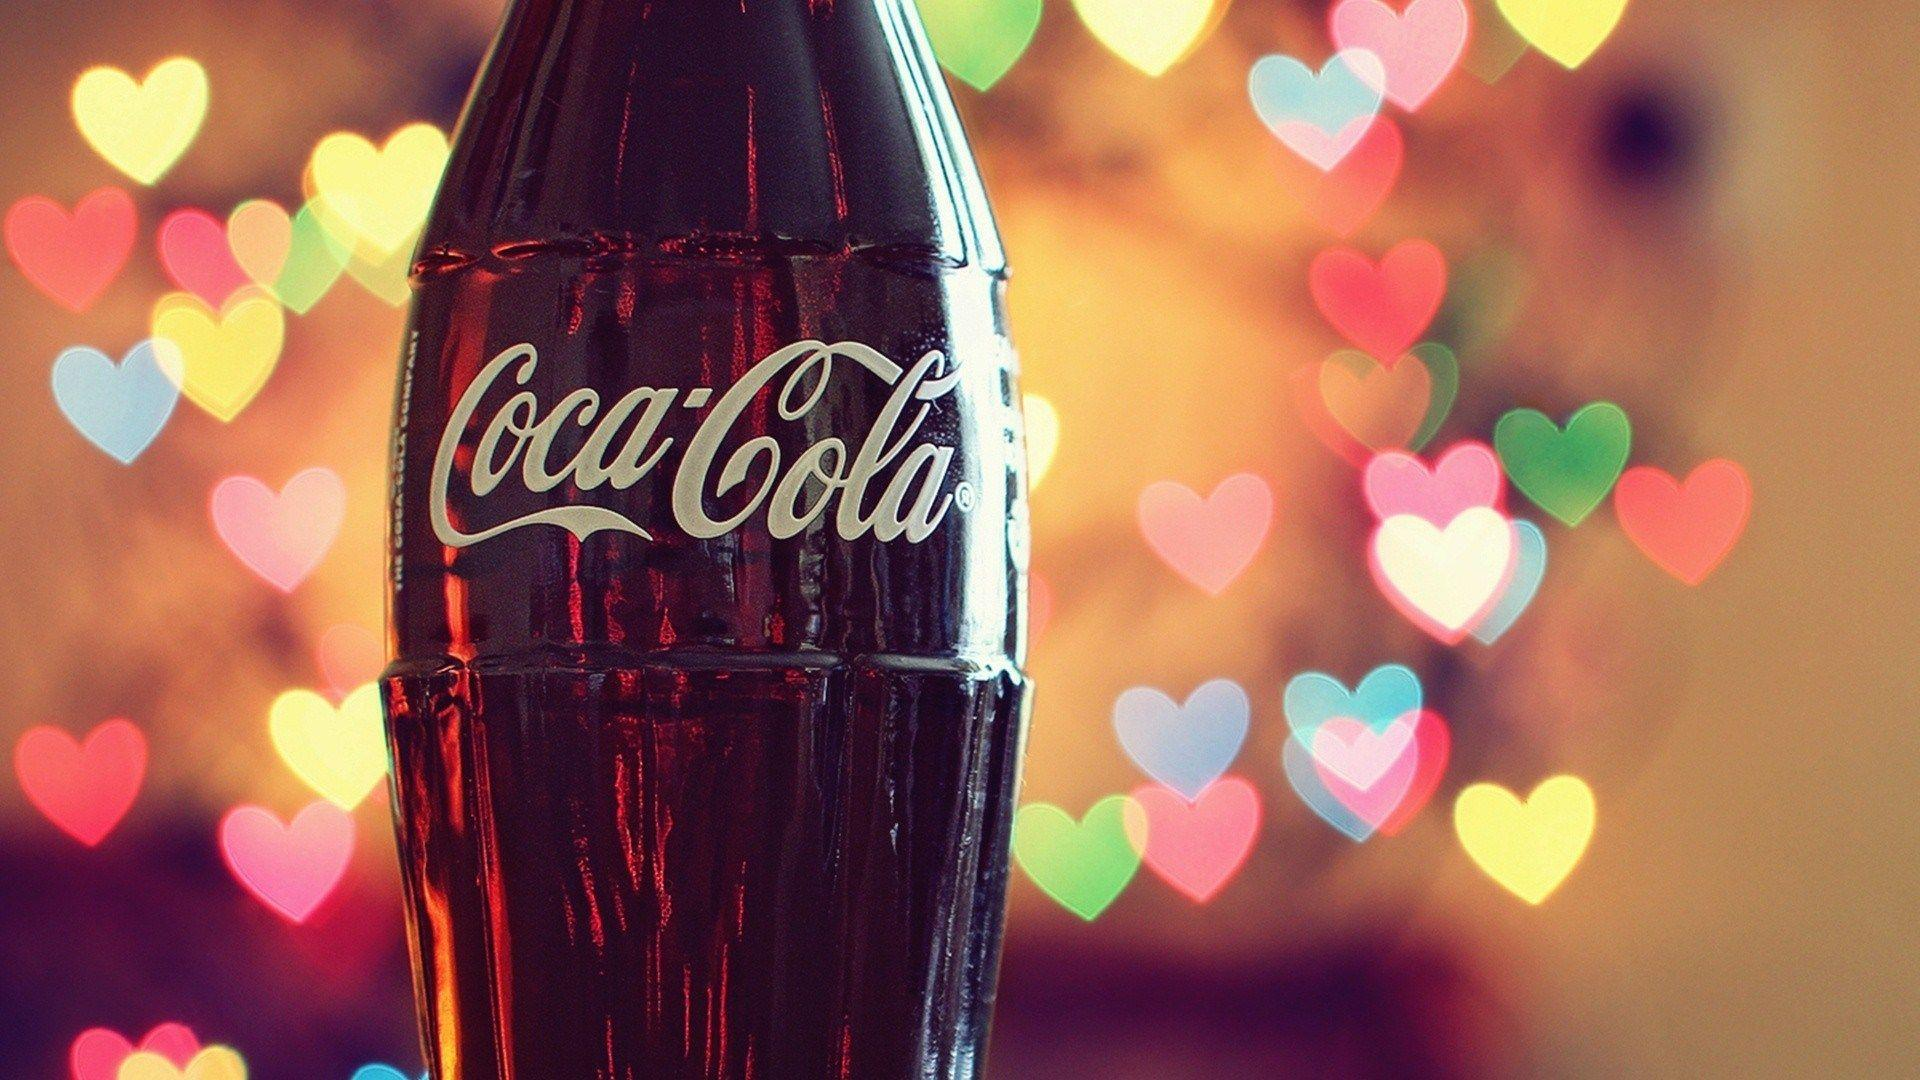 Love Coca-Cola Hearts Lights Photo HD Wallpaper Desktop ...